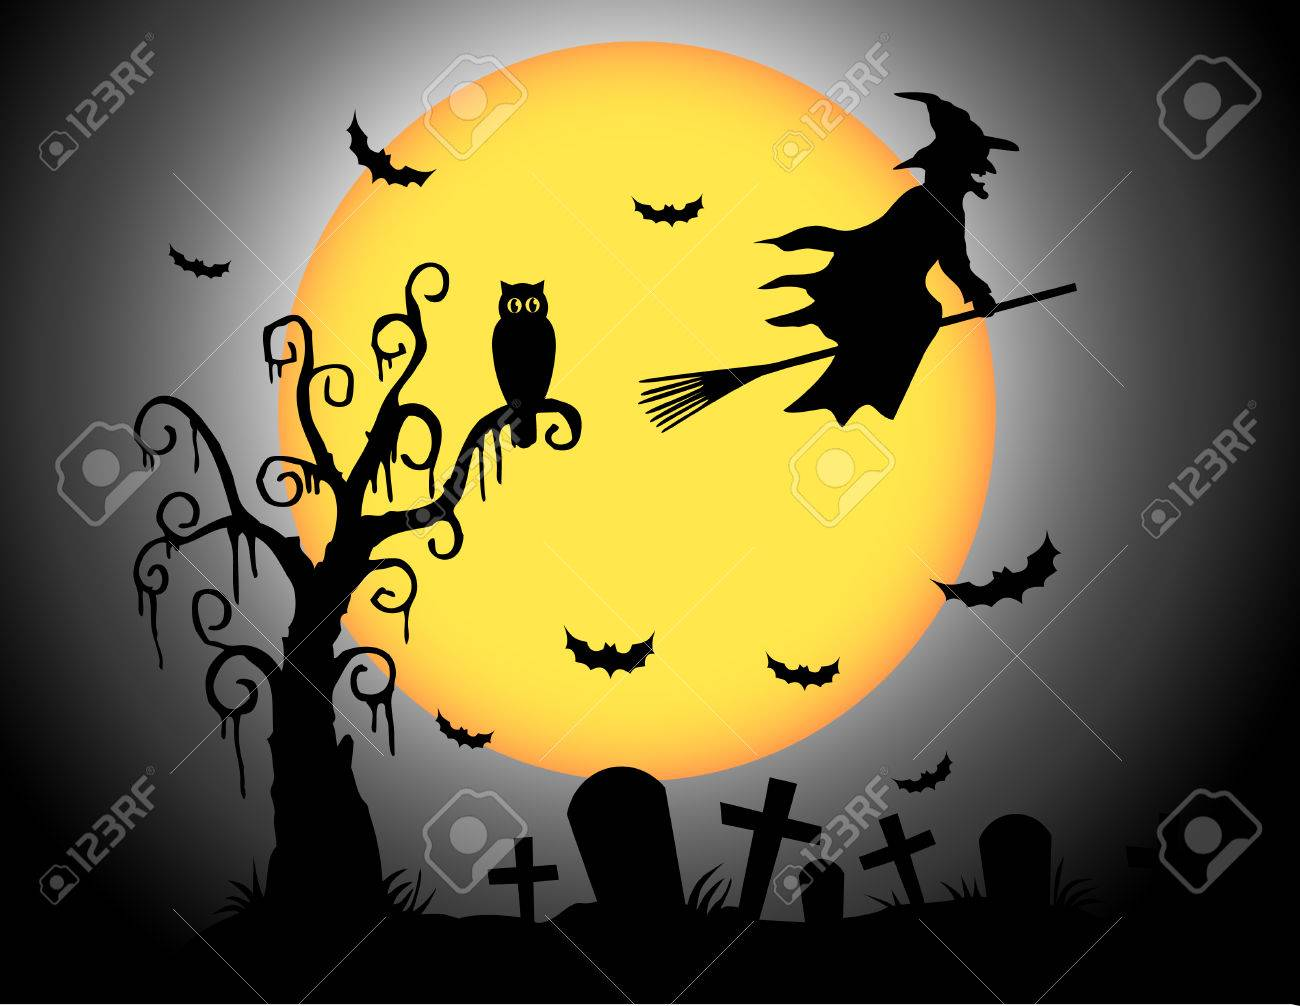 Halloween Moon Royalty Free Cliparts, Vectors, And Stock ...